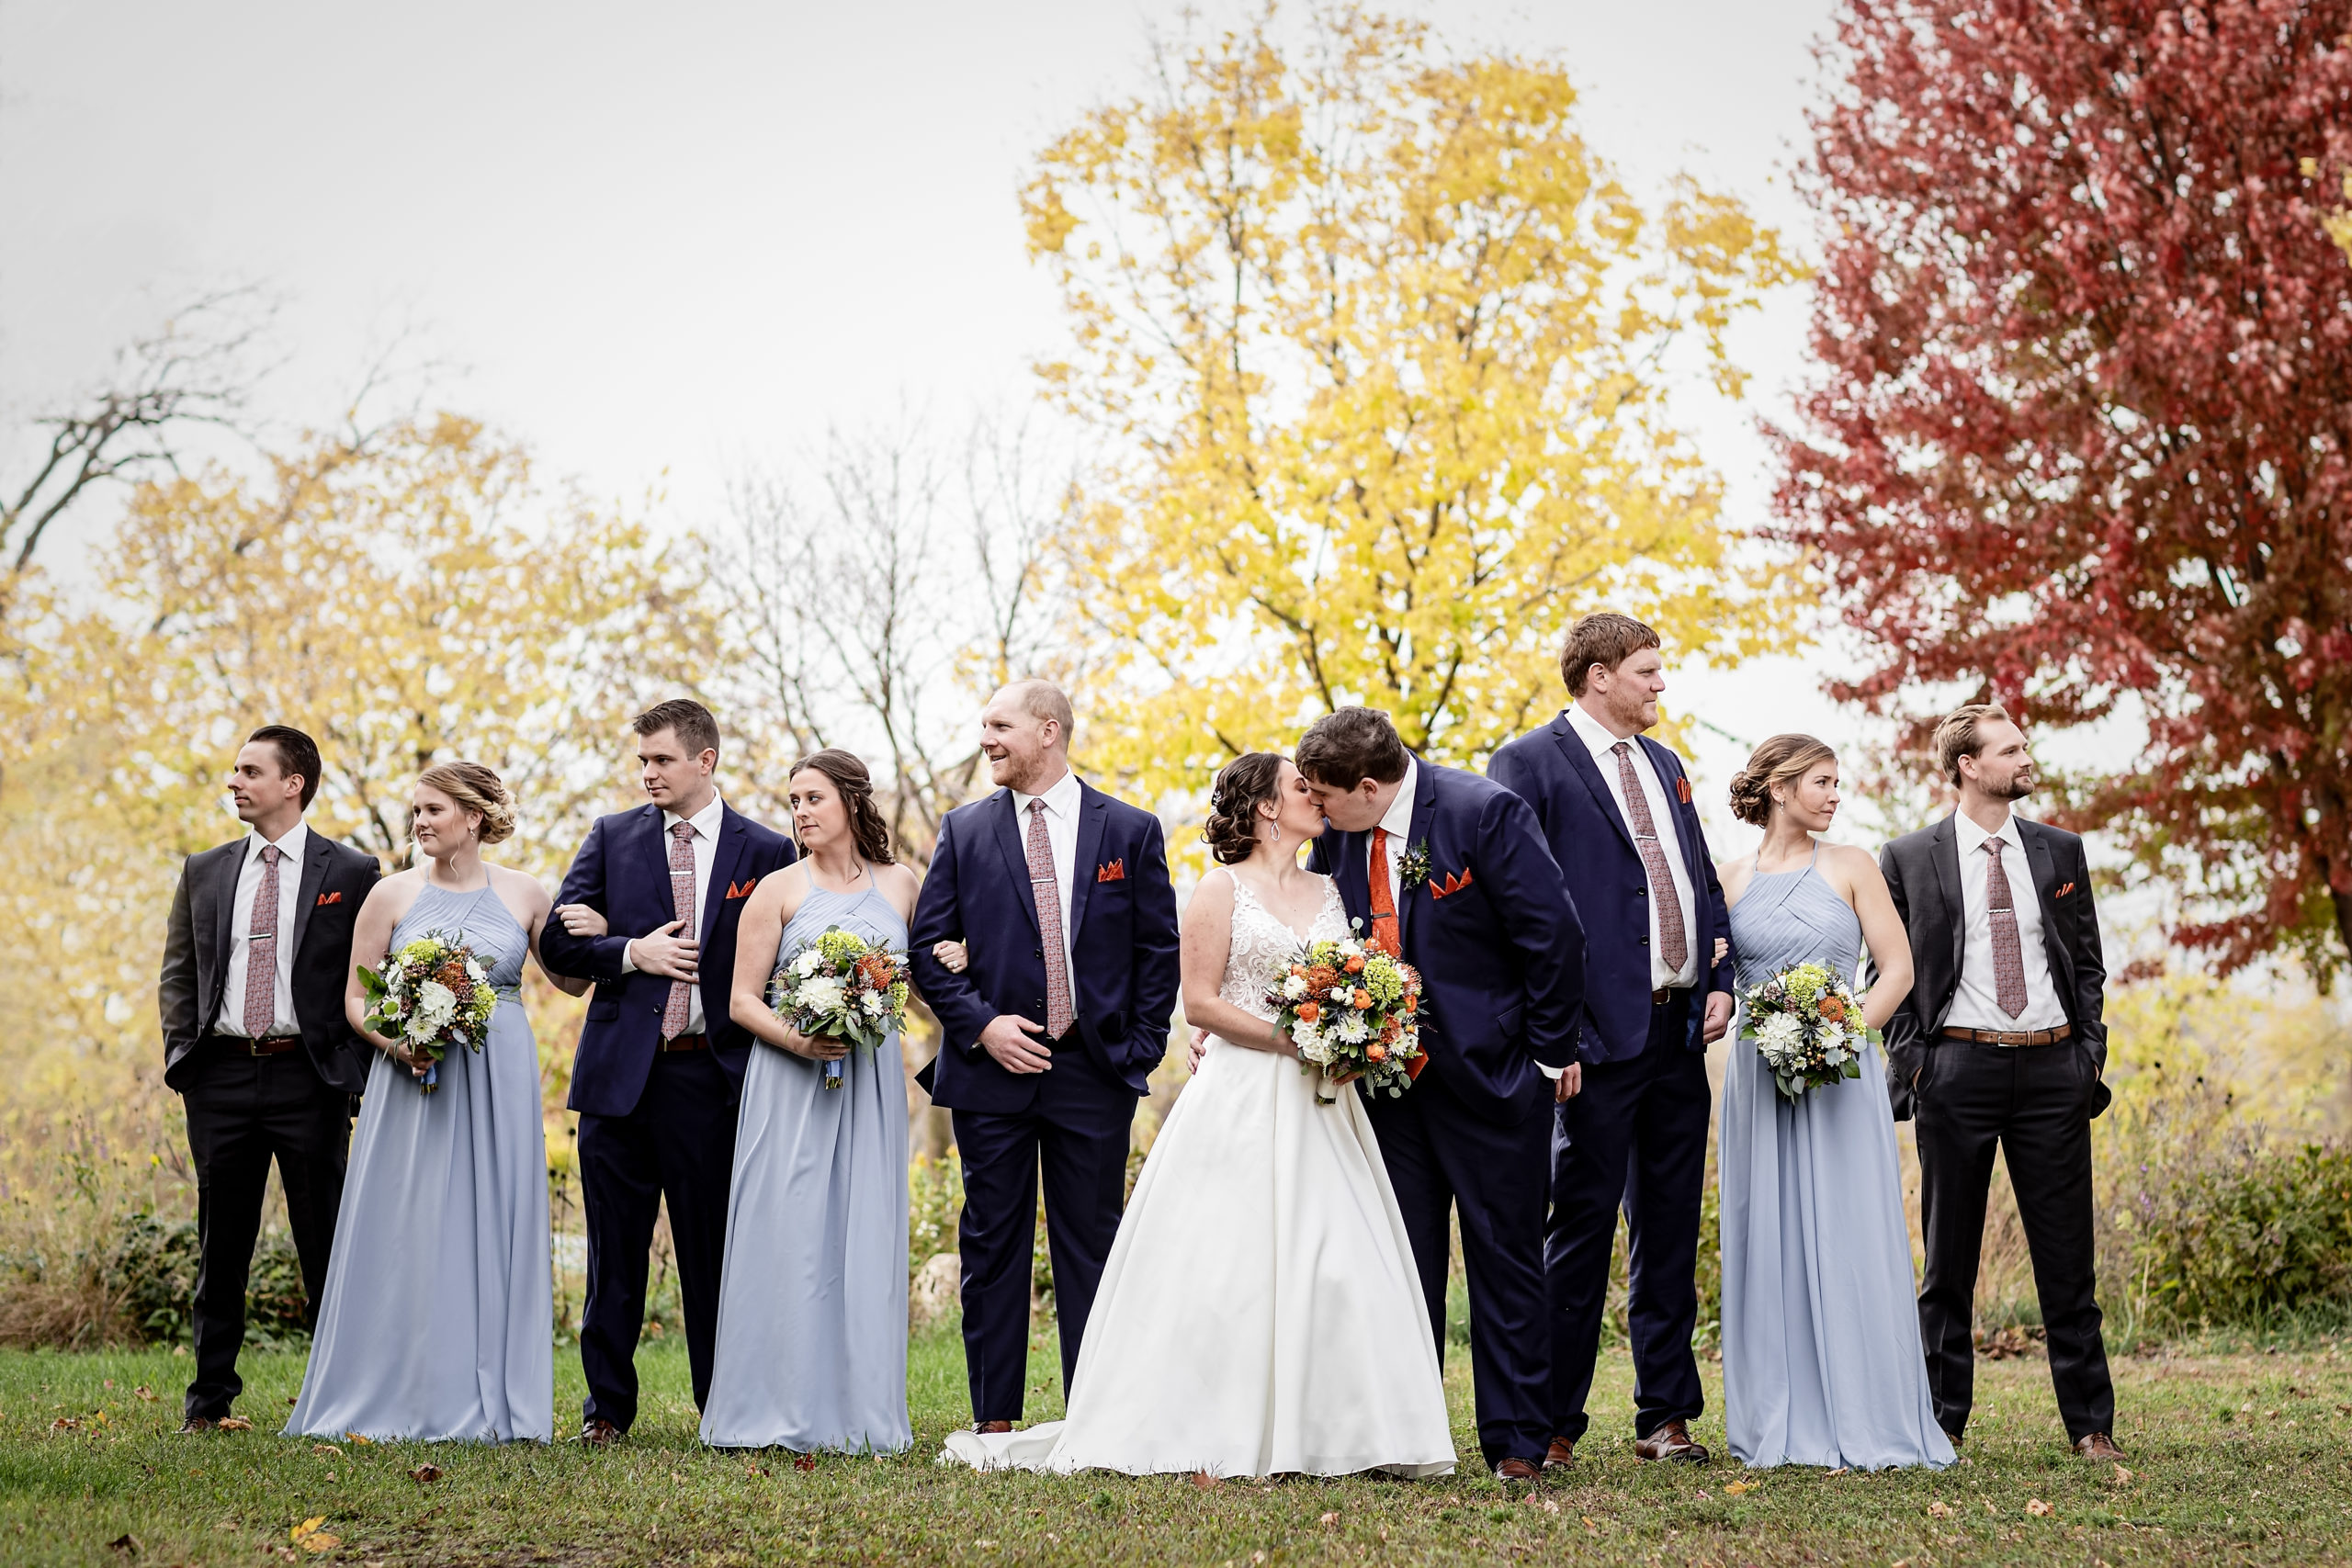 Myrick Park Wedding in La Crosse Wisconsin · Laura + Connor | Pink Spruce Photography